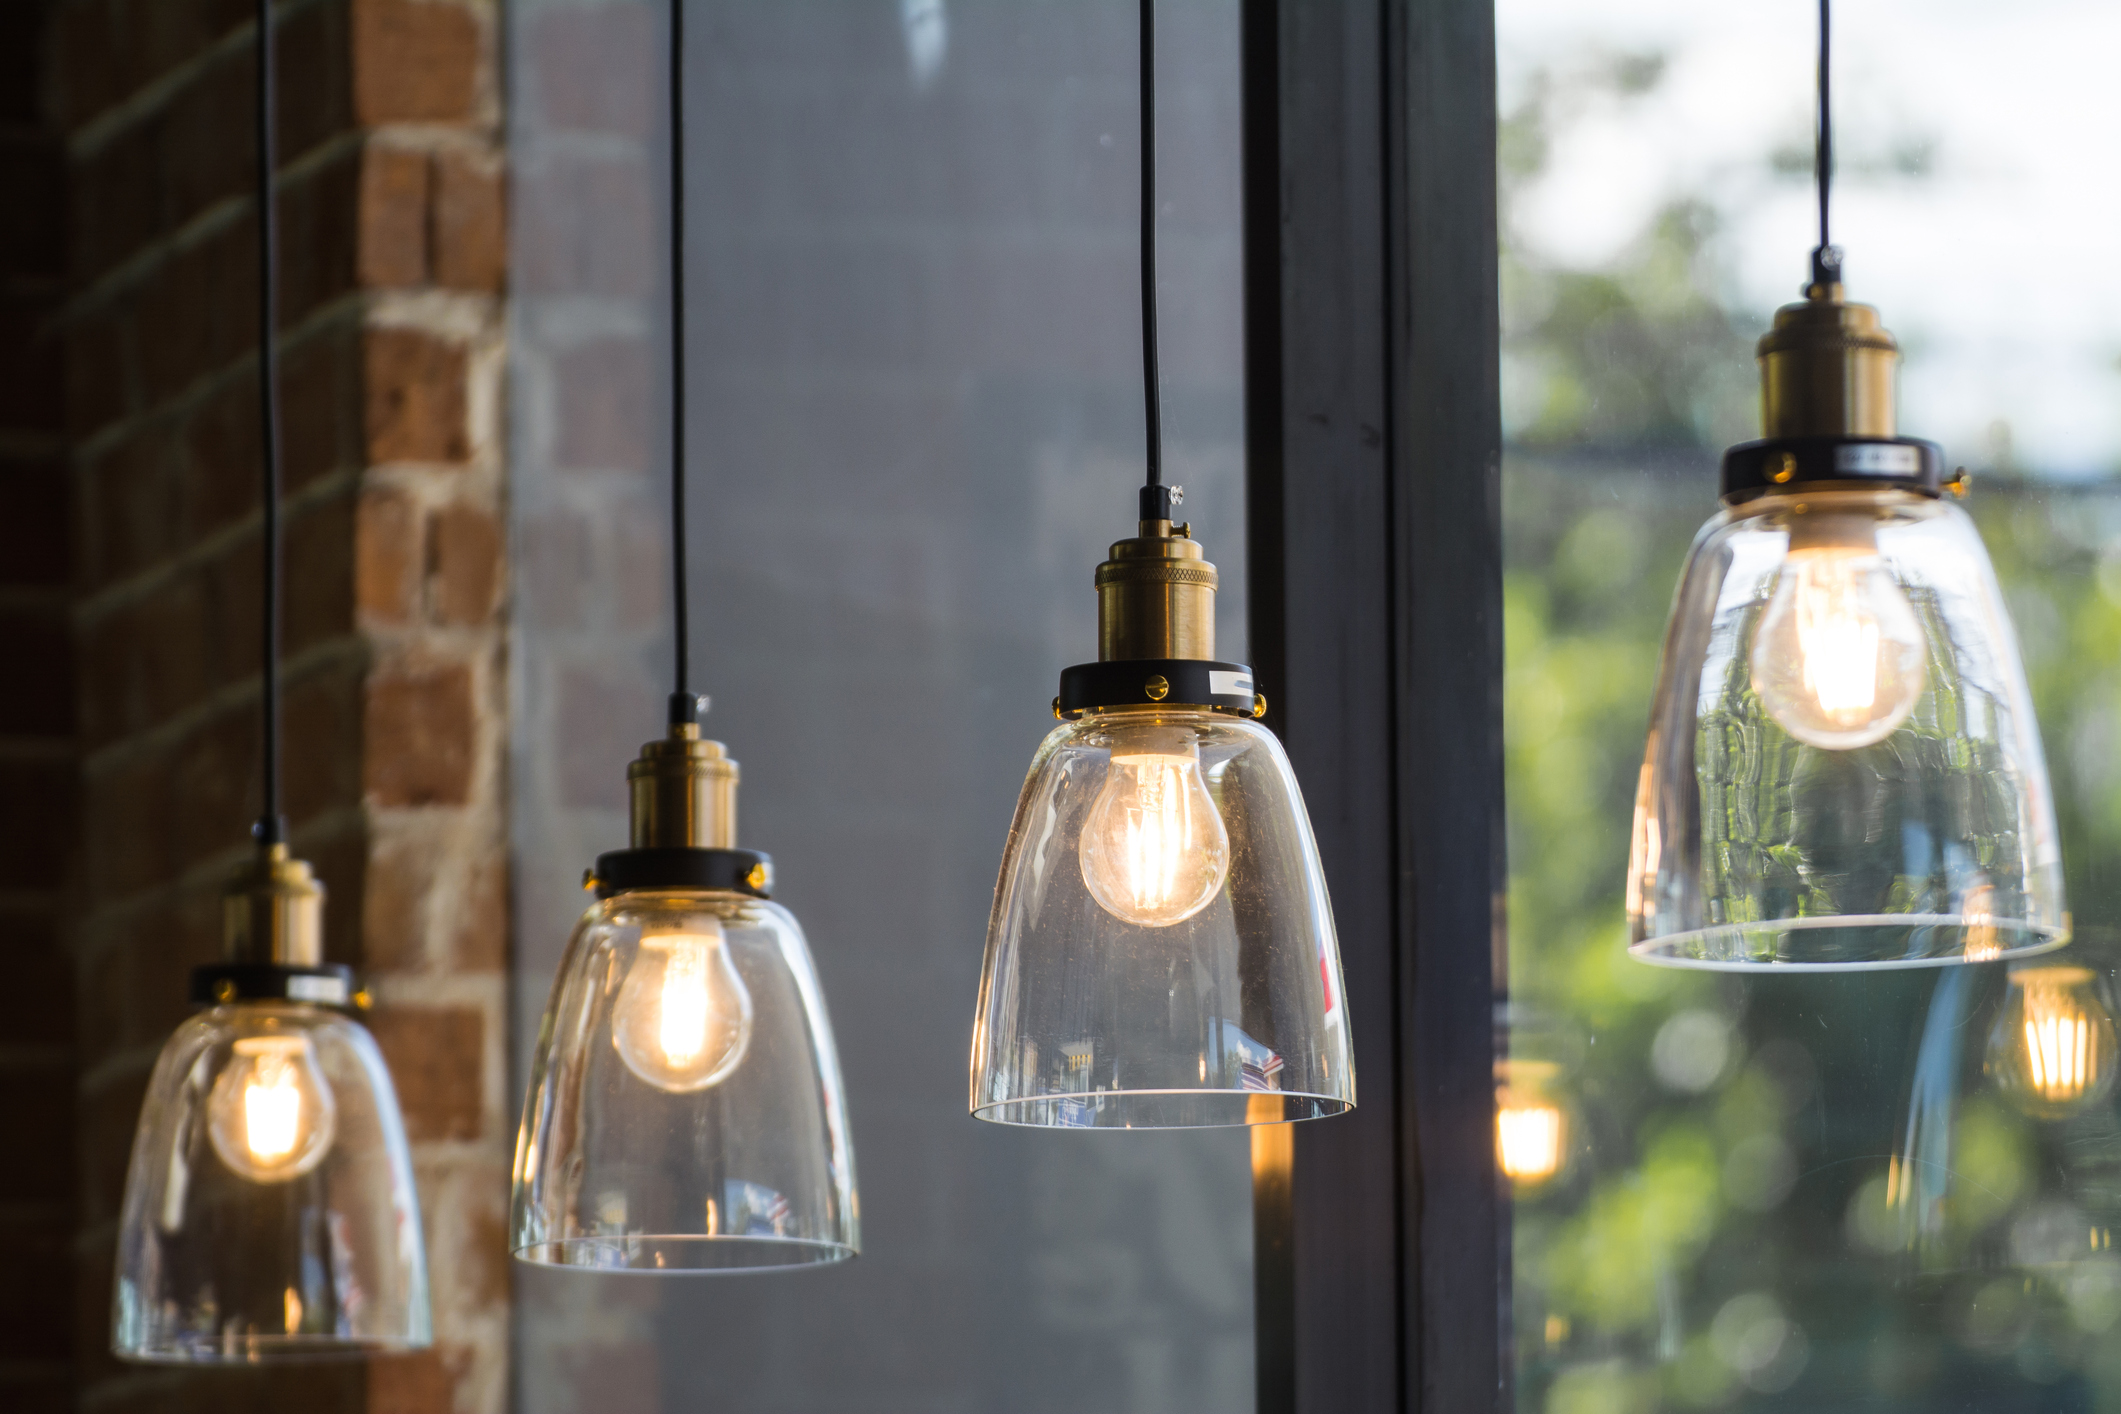 Lighting Design and Control - Get rid of wall acne and multiply banks of light switches.Help you to define and enhance areas of architectural or special significance or just add some intimacy to open plan areas with beautiful lighting design and control solutions, adding that special touch to a project.